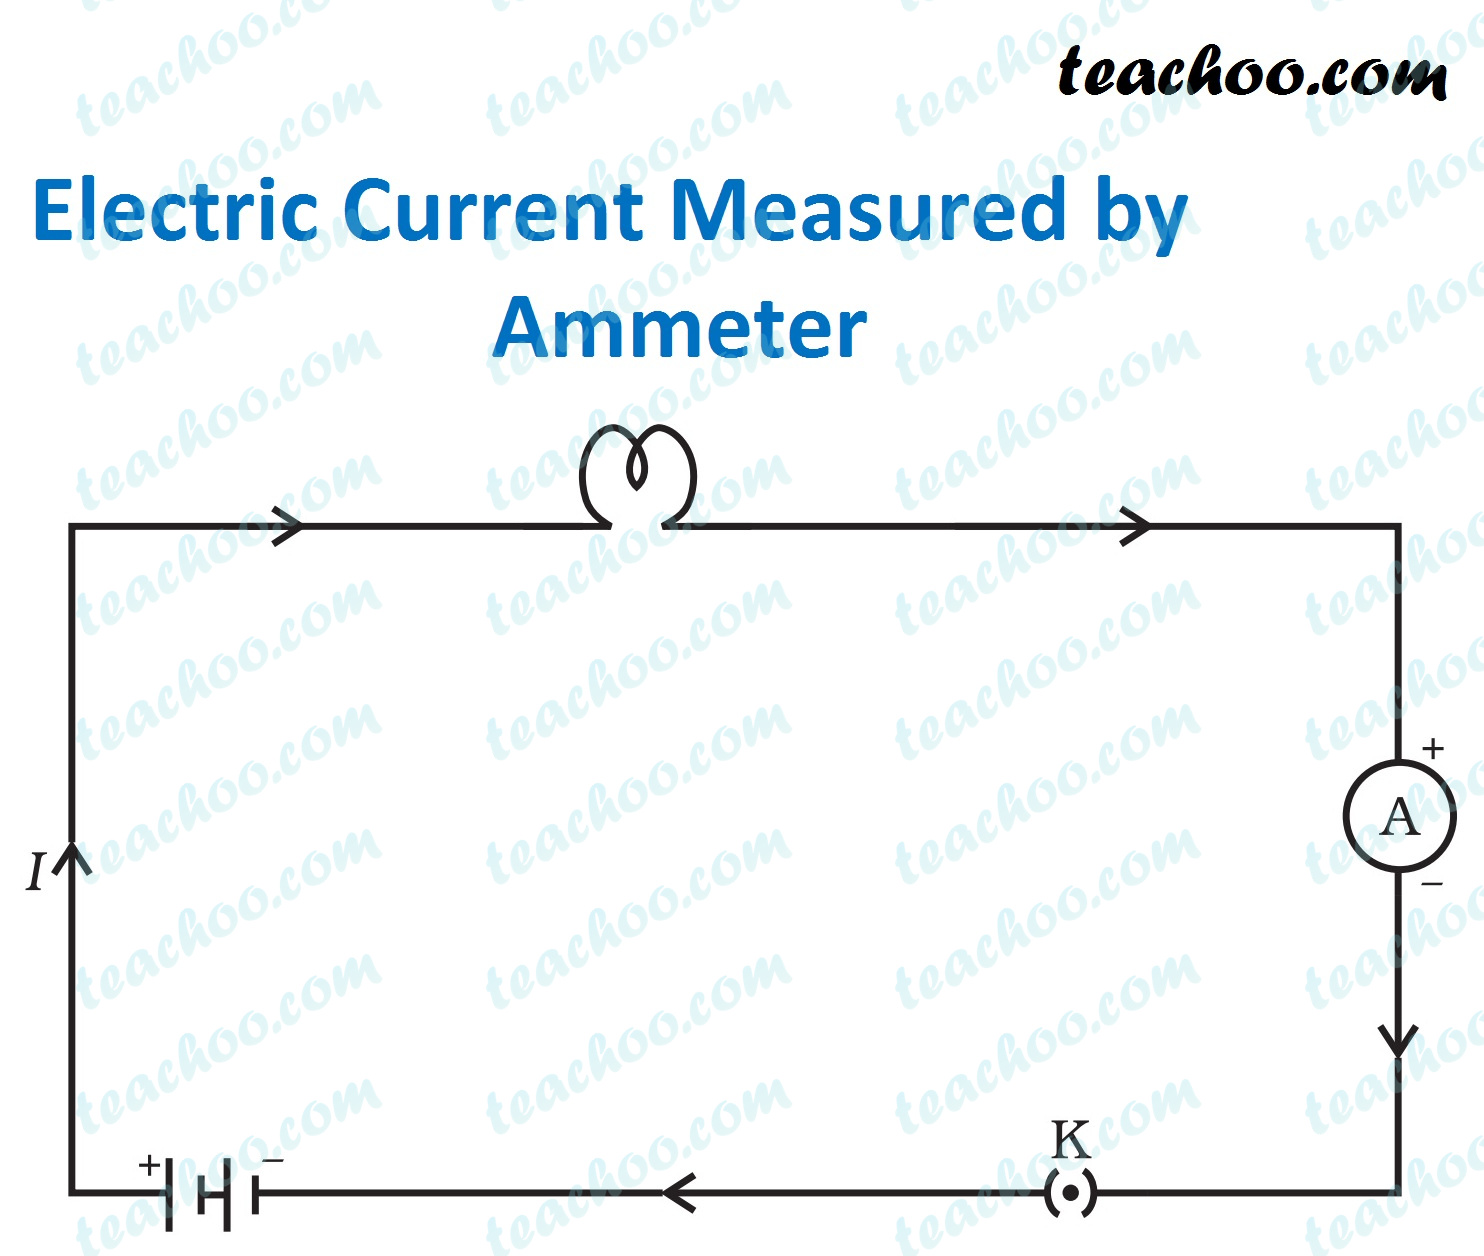 electric-current-measured-by-ammeter.jpg